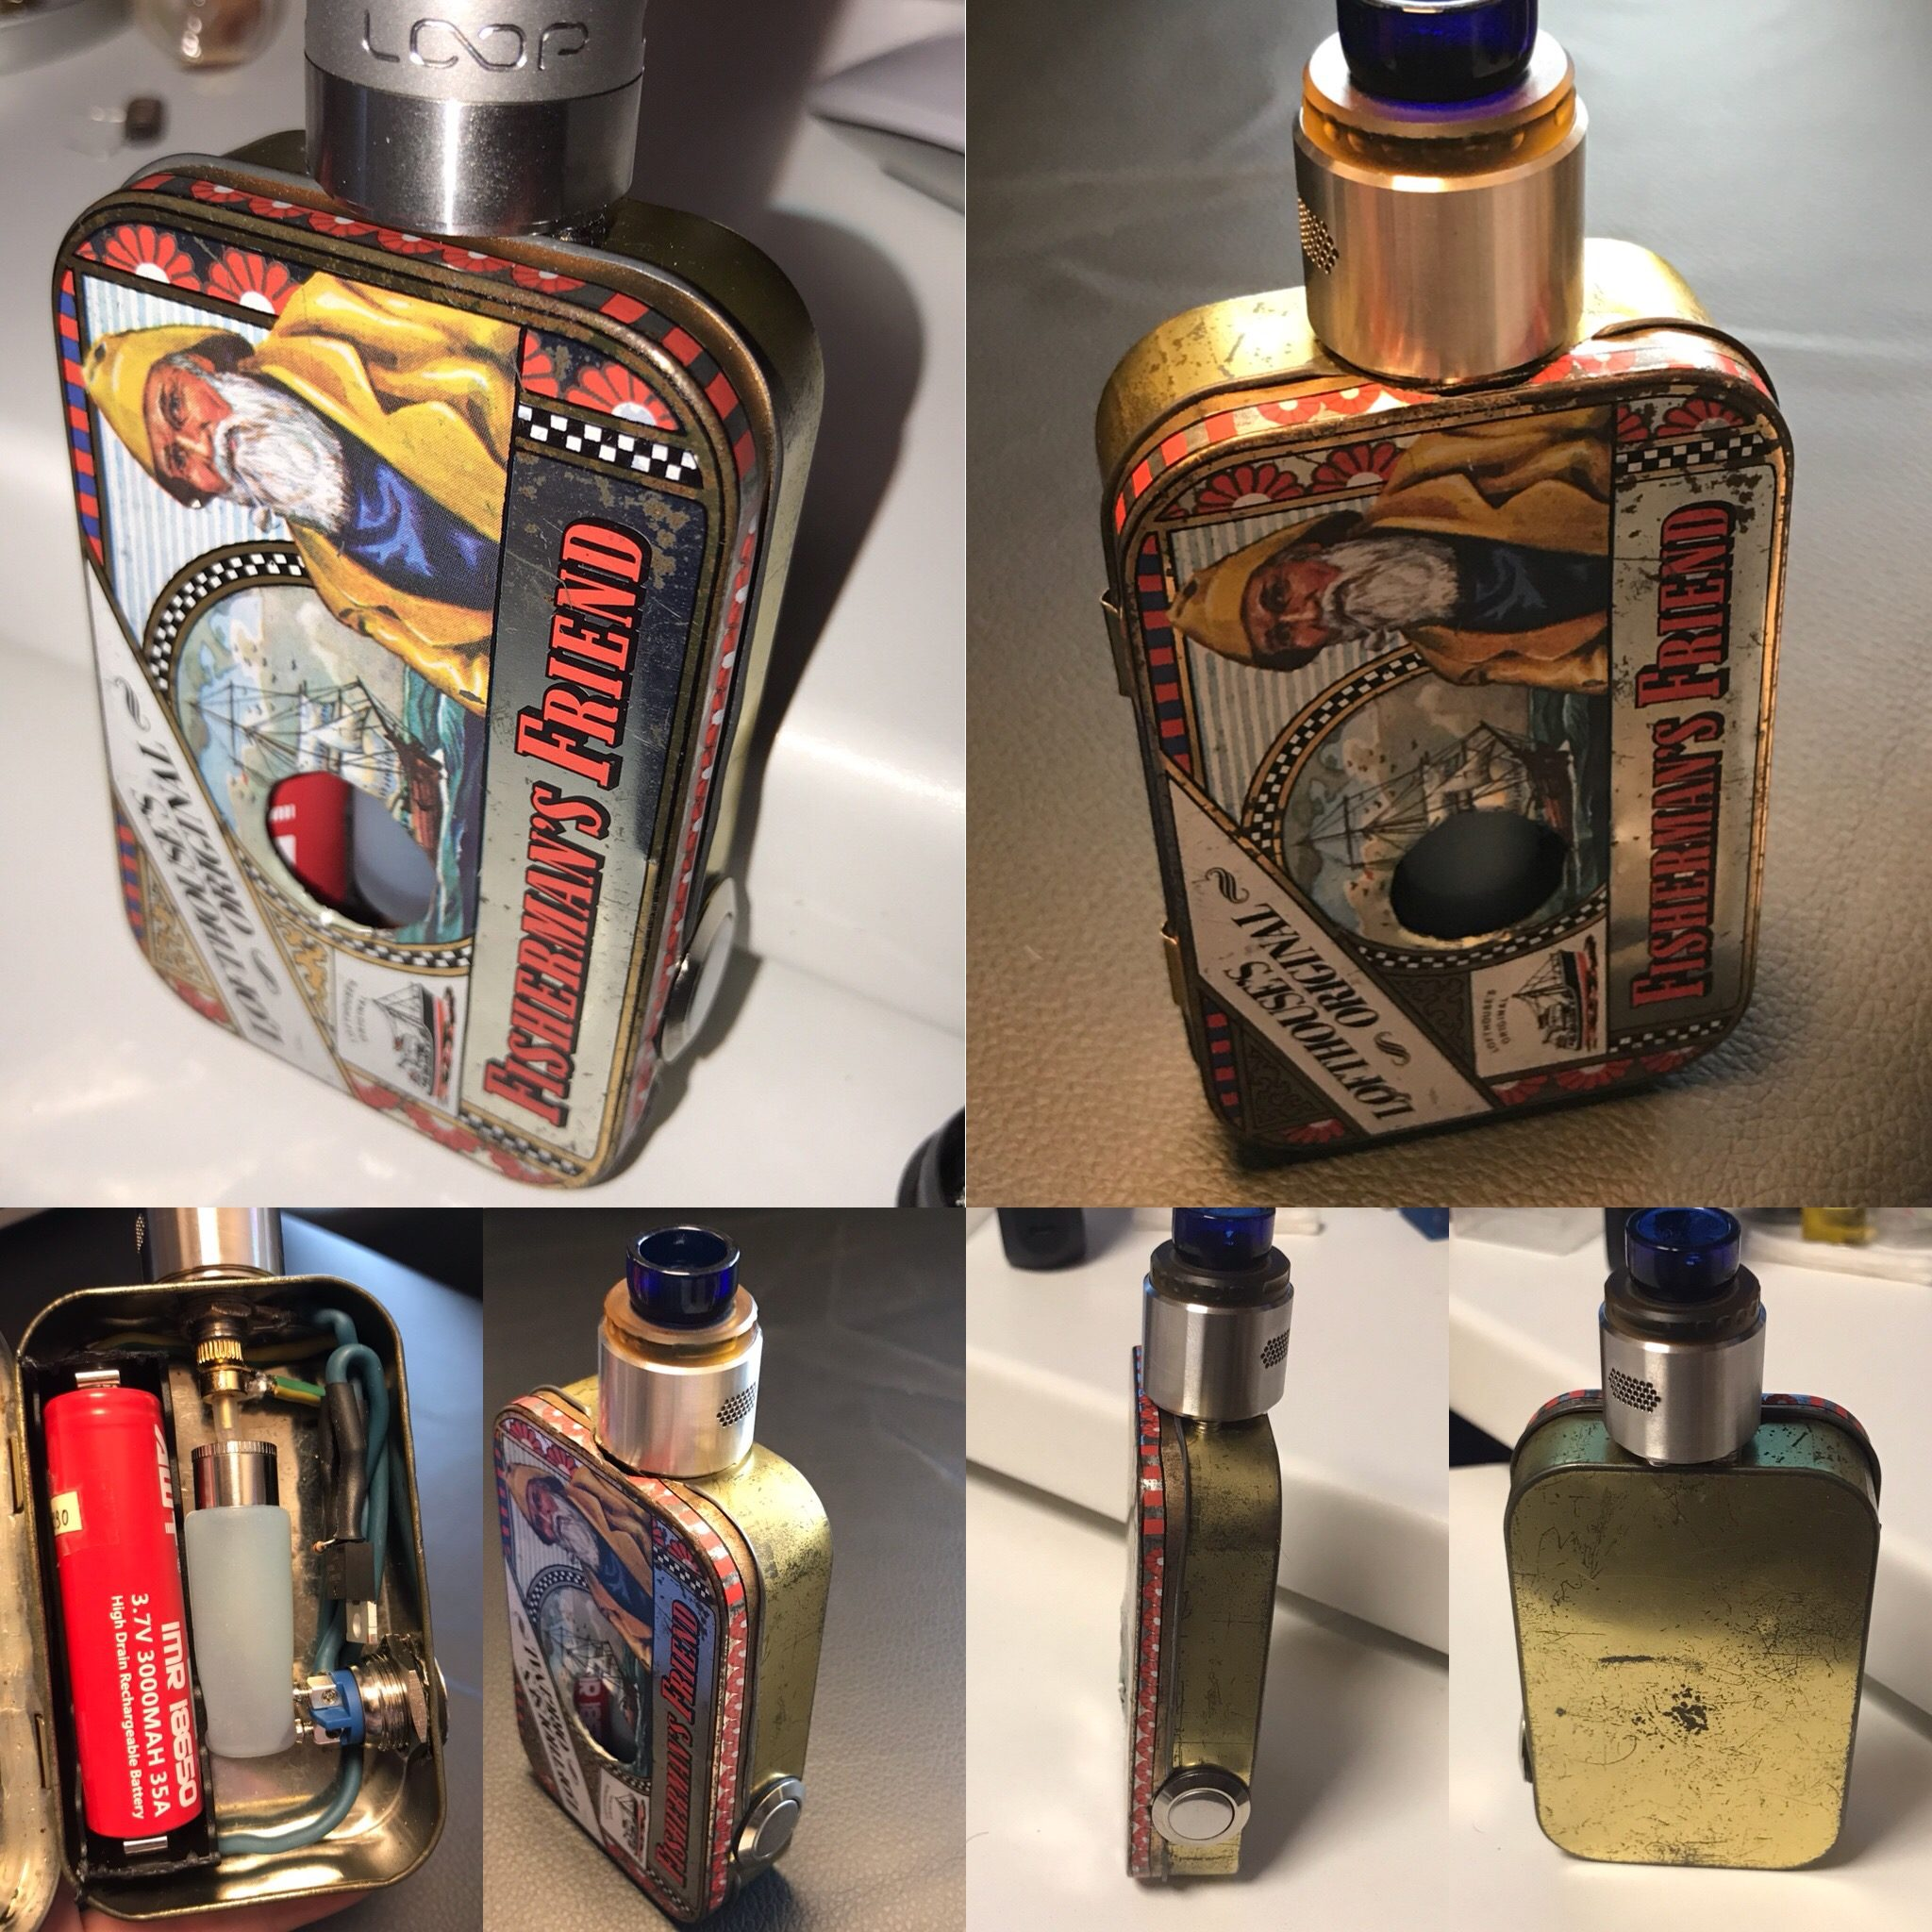 Die Fisherman´s Friend als ein 1s squonker mod.